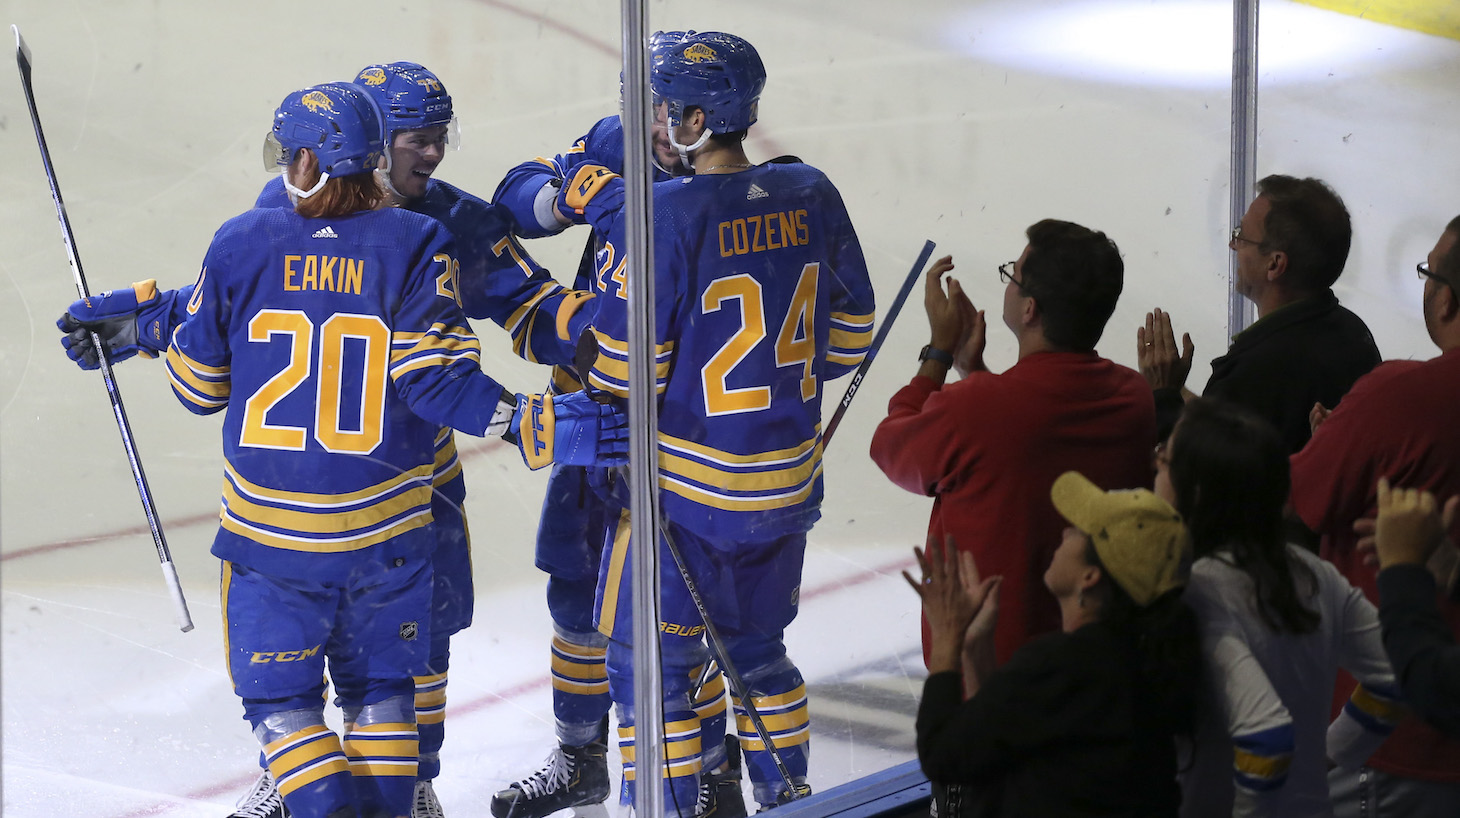 BUFFALO, NEW YORK - OCTOBER 16: Buffalo Sabres players celebrate a goal by Cody Eakin #20 during the second period of a NHL hockey game against the Arizona Coyotes at KeyBank Center on October 16, 2021 in Buffalo, New York. (Photo by Joshua Bessex/Getty Images)